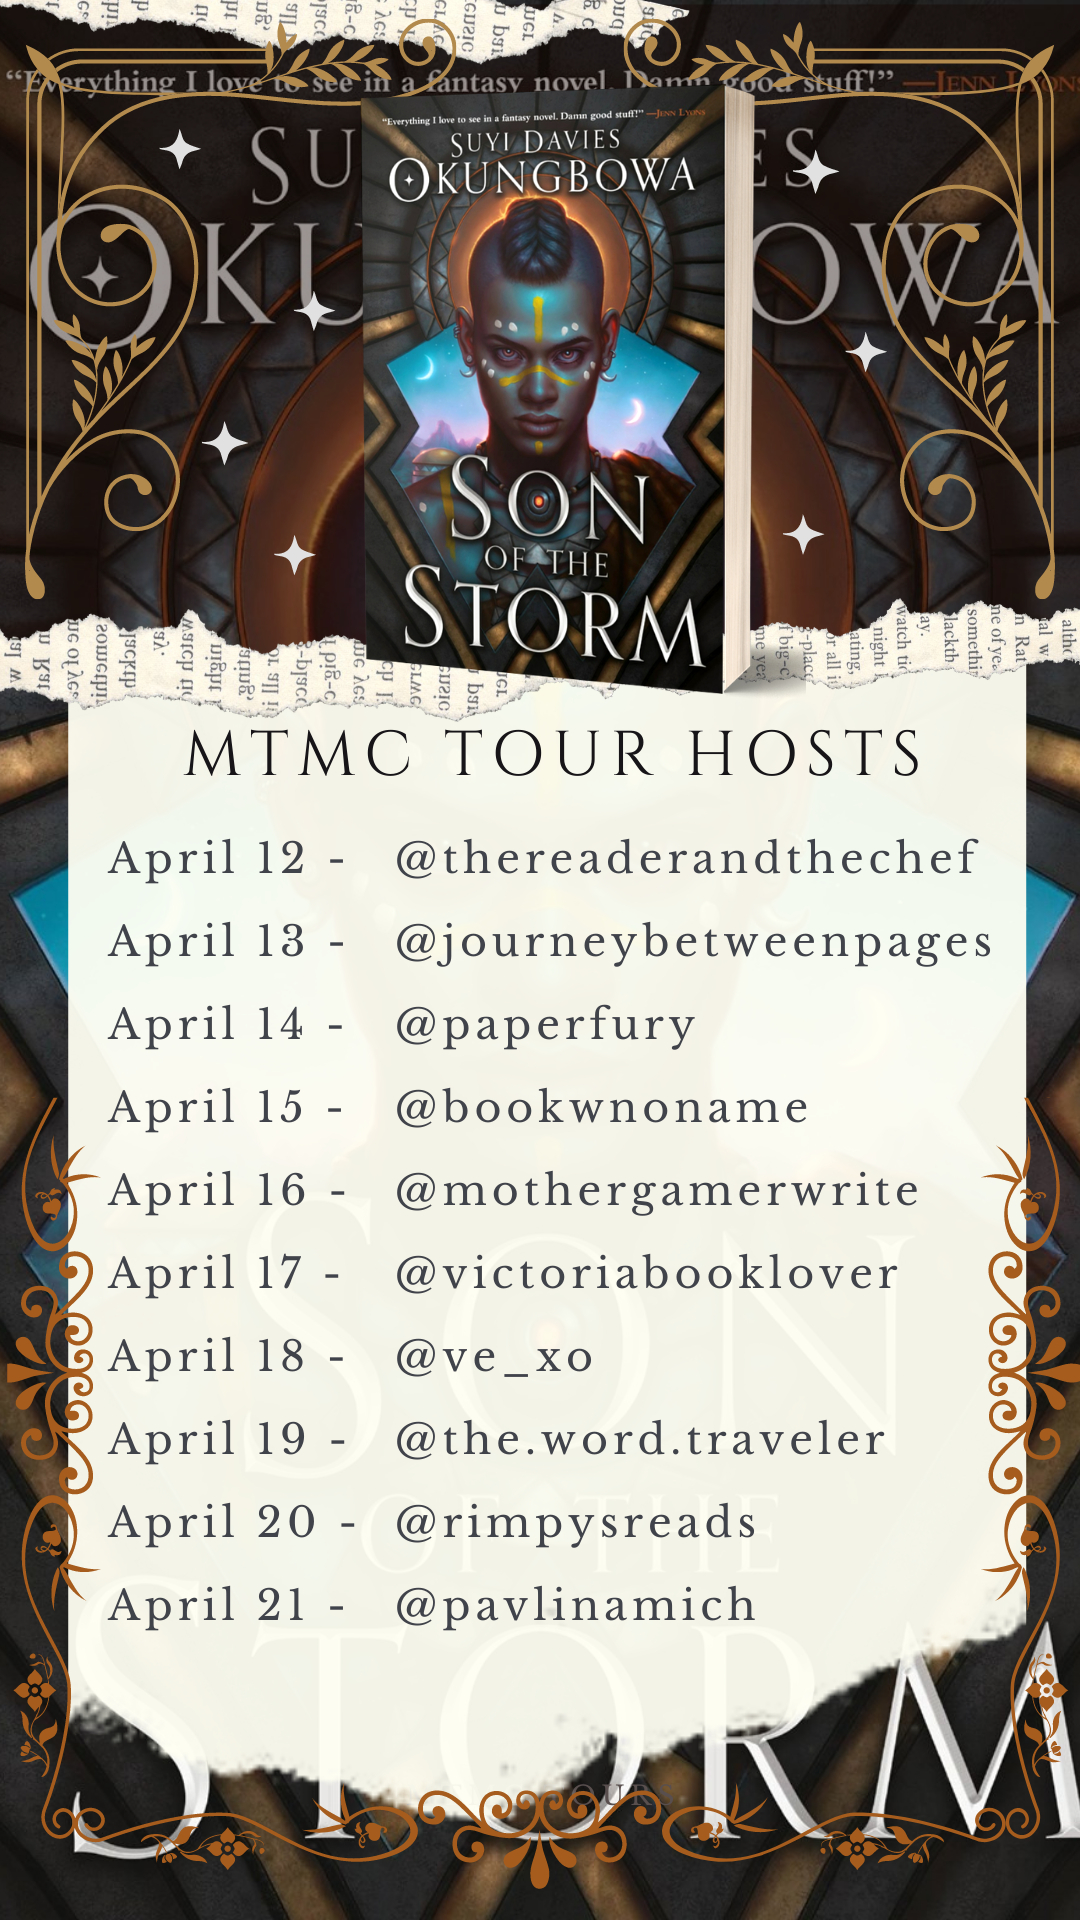 SON OF THE STORM - mtmctours story templates (2)